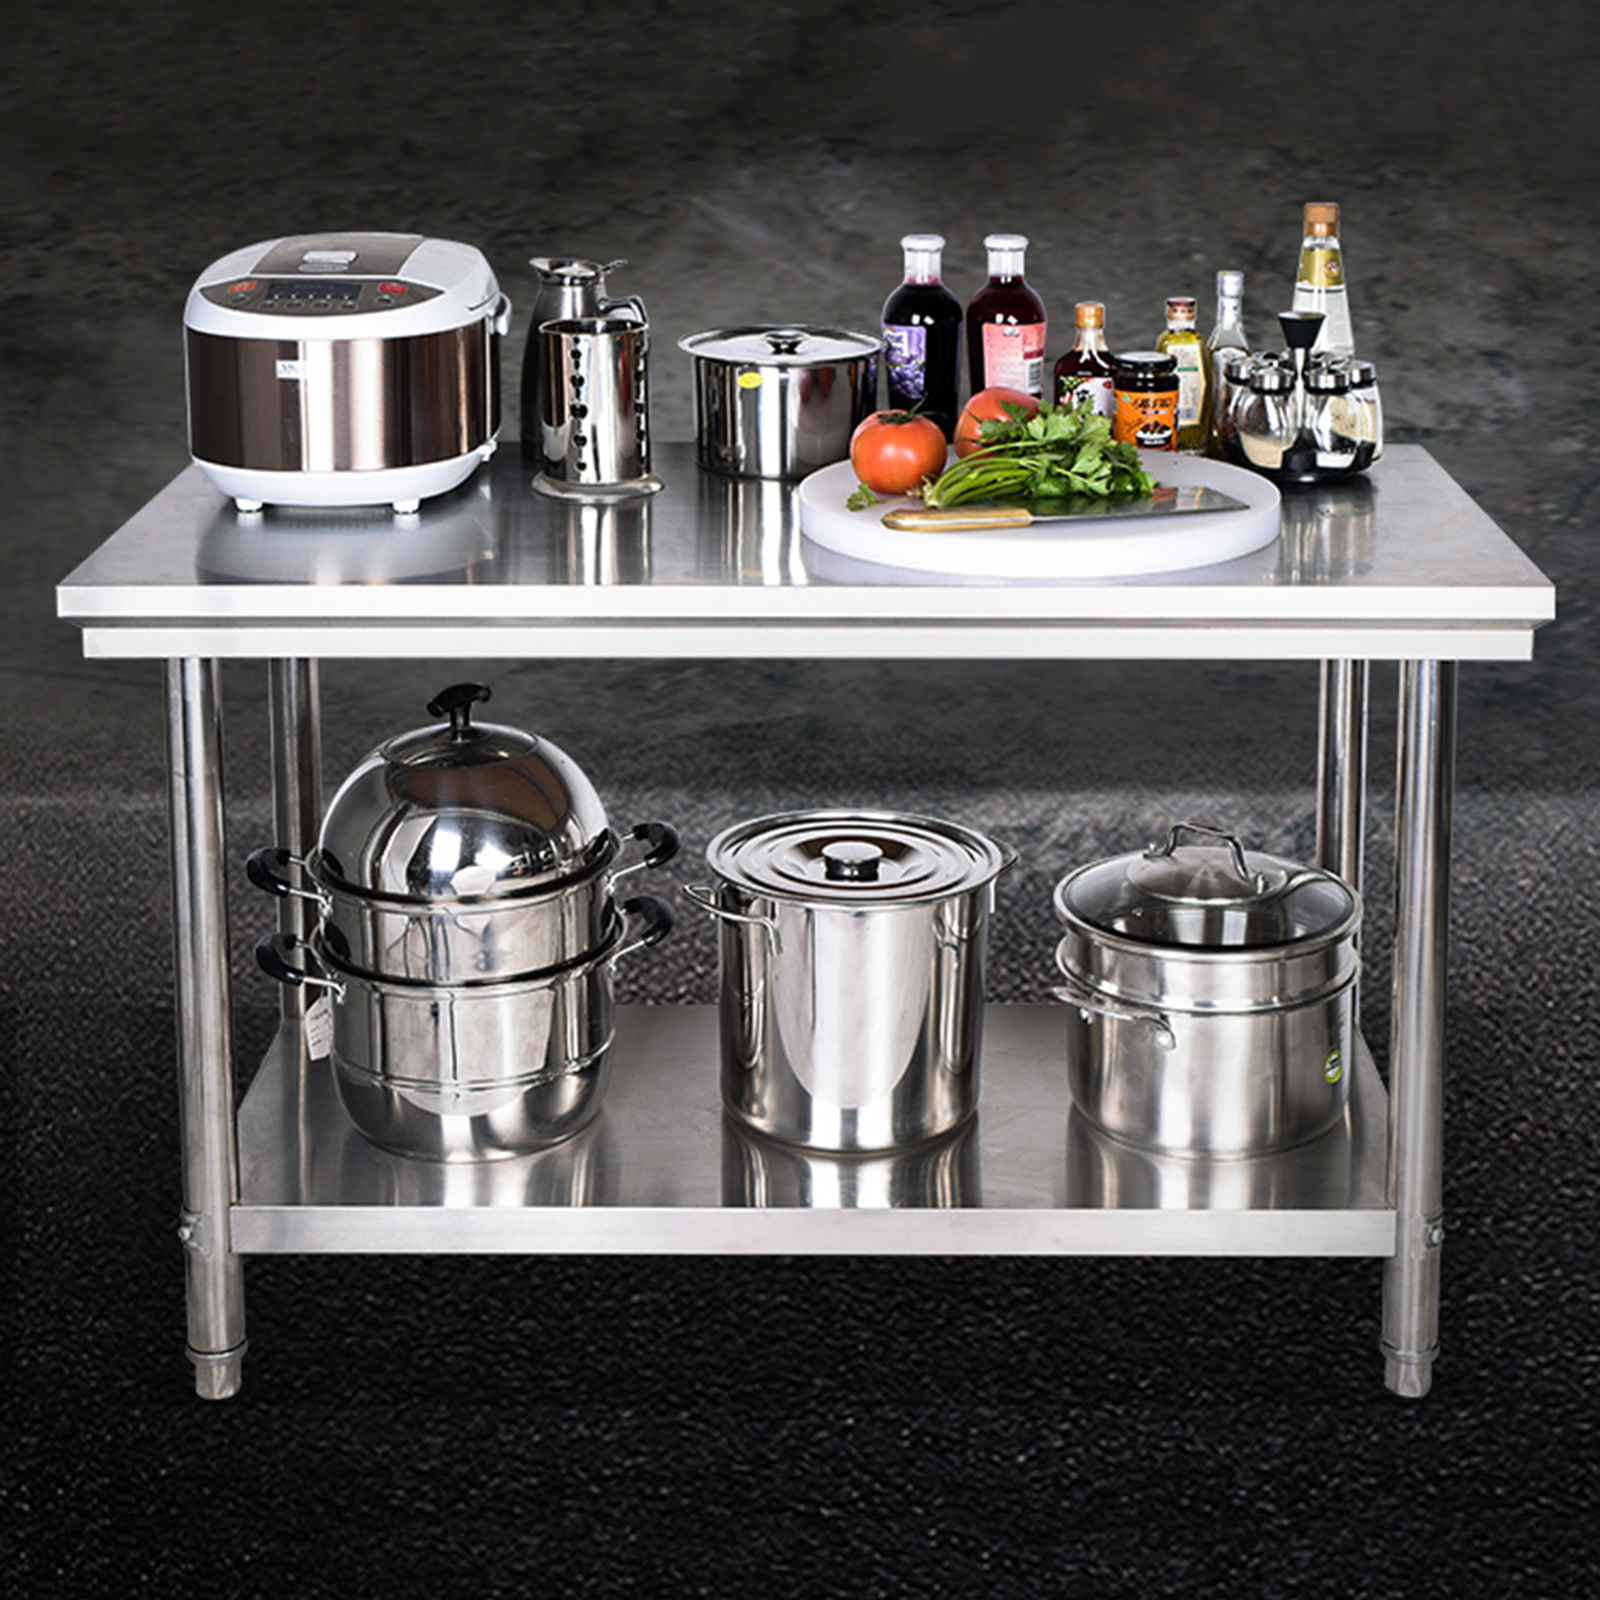 47 inch Heavy Duty Stainless Steel Home Kitchen Workbench Table with Shelf in Racks Holders from Home Garden